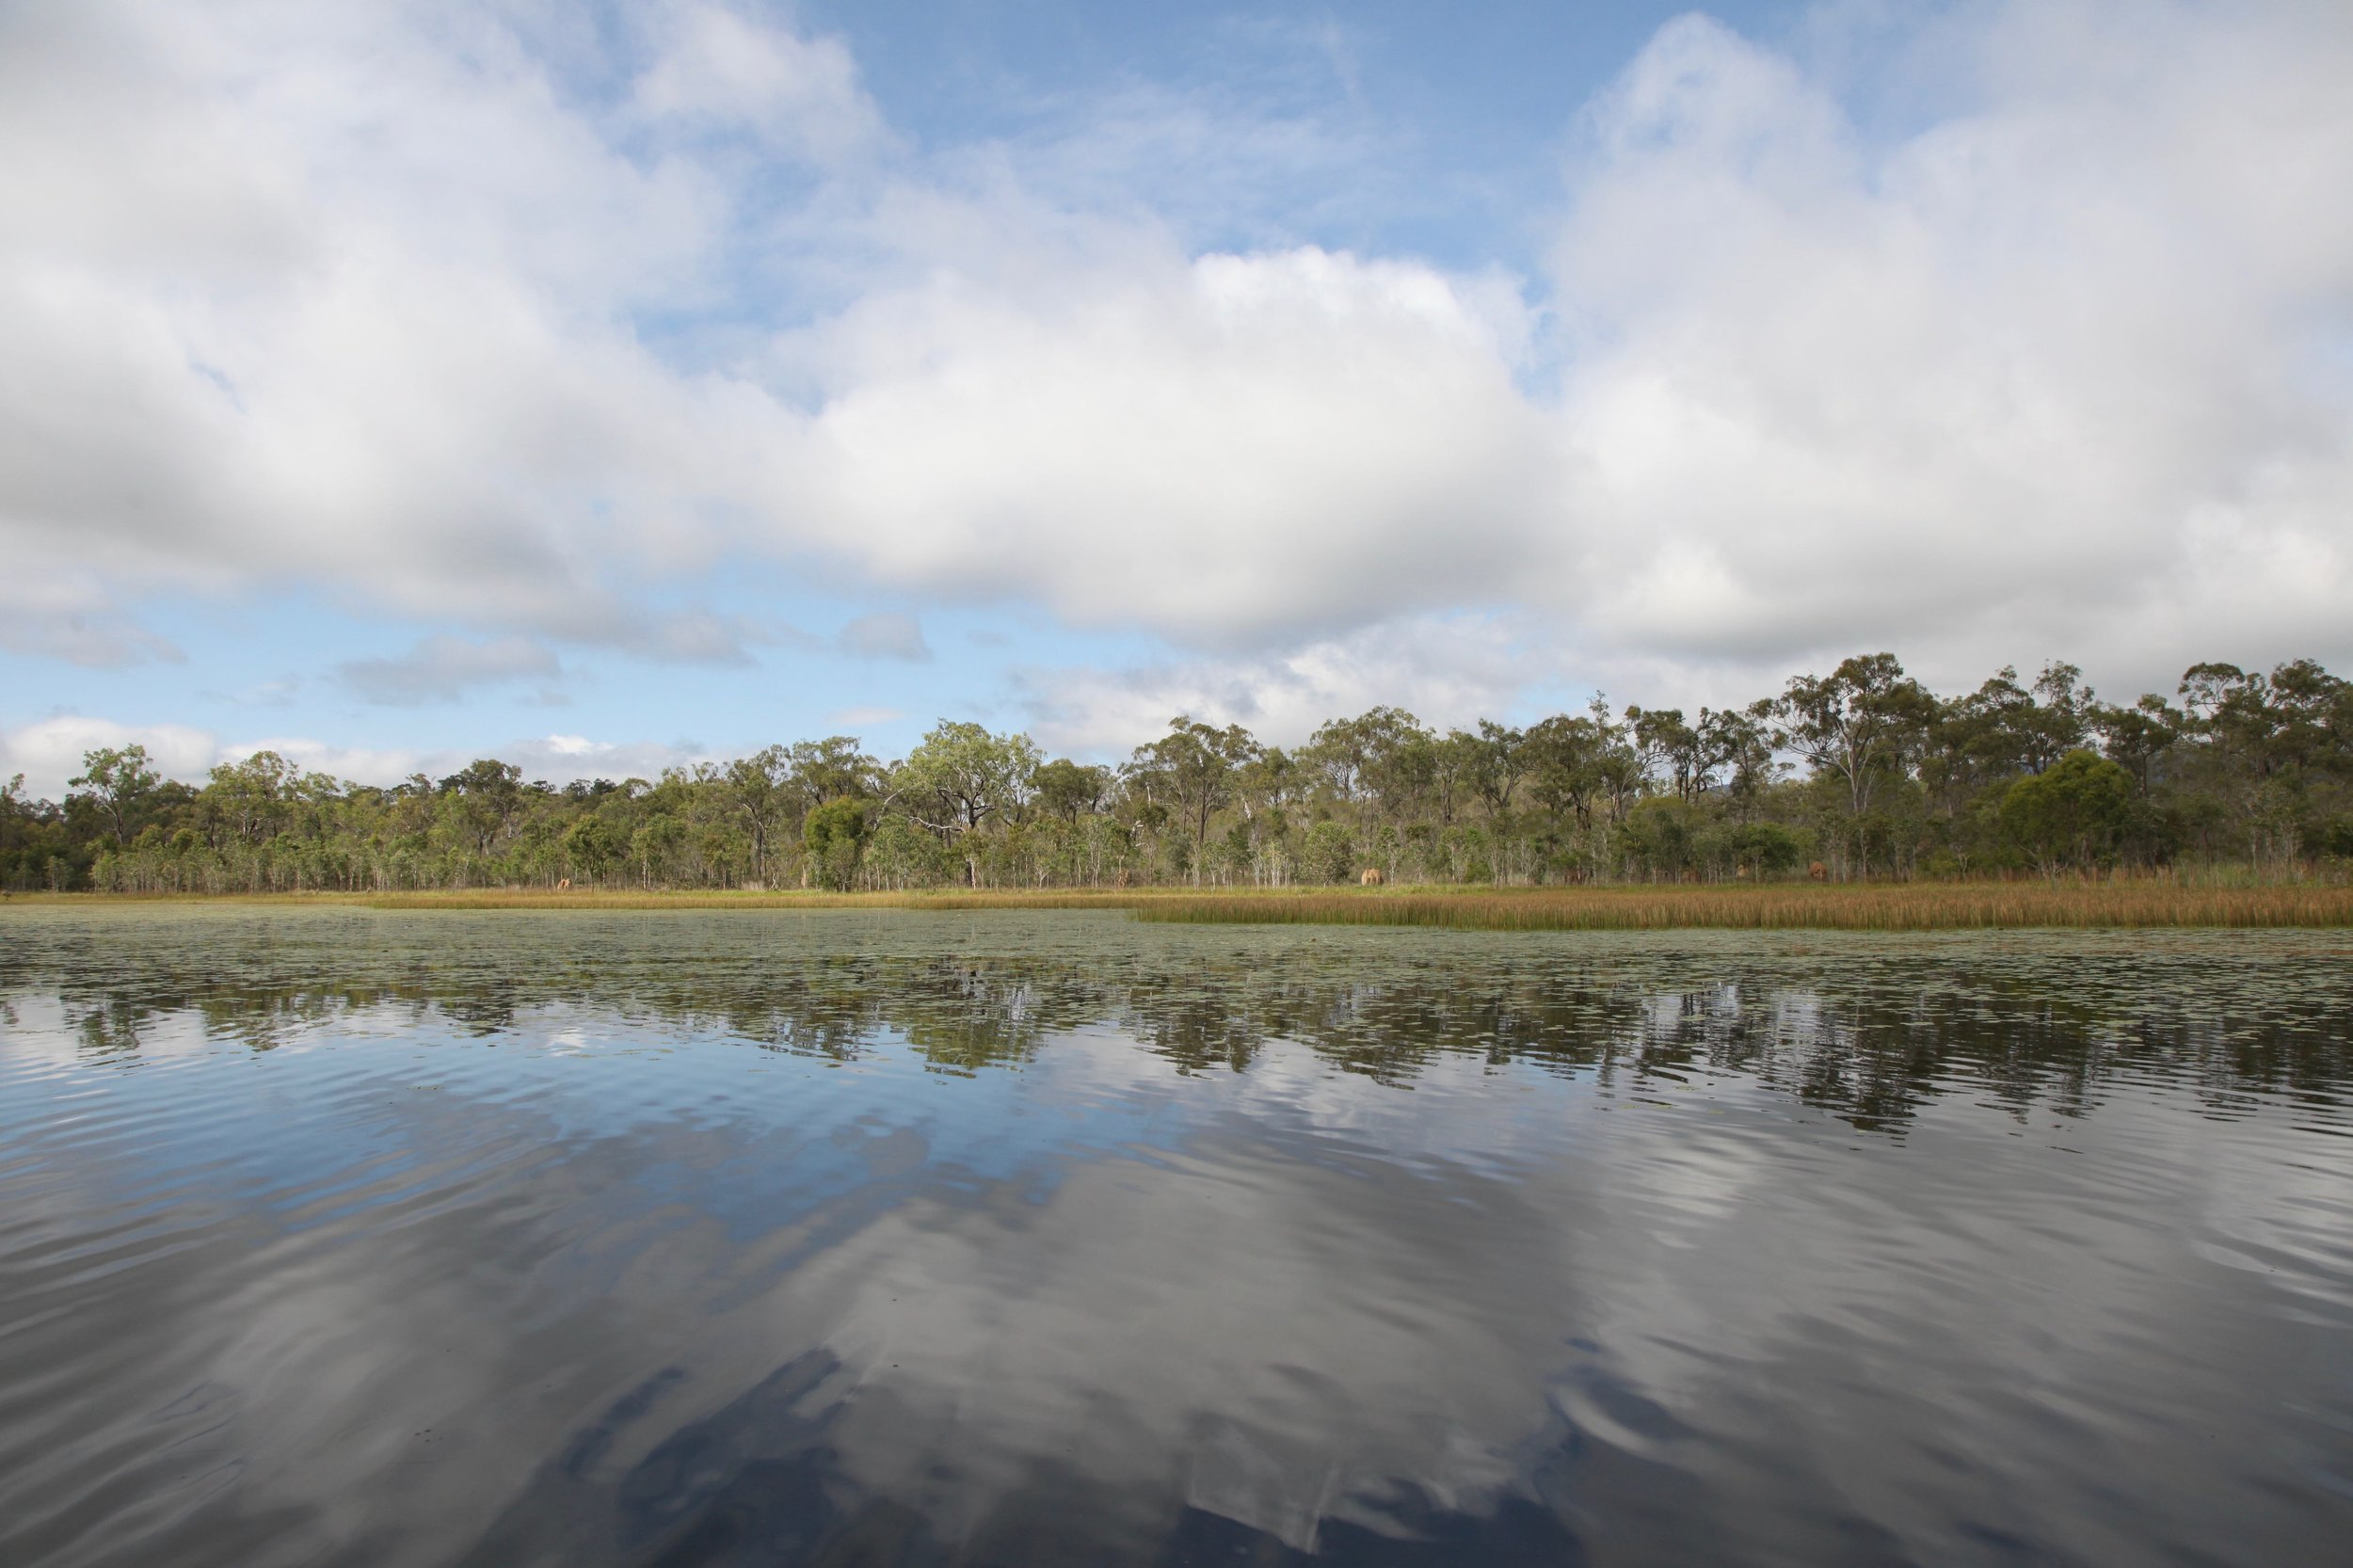 Mareeba Wetlands in far north Queensland is about 80km west of Cairns.